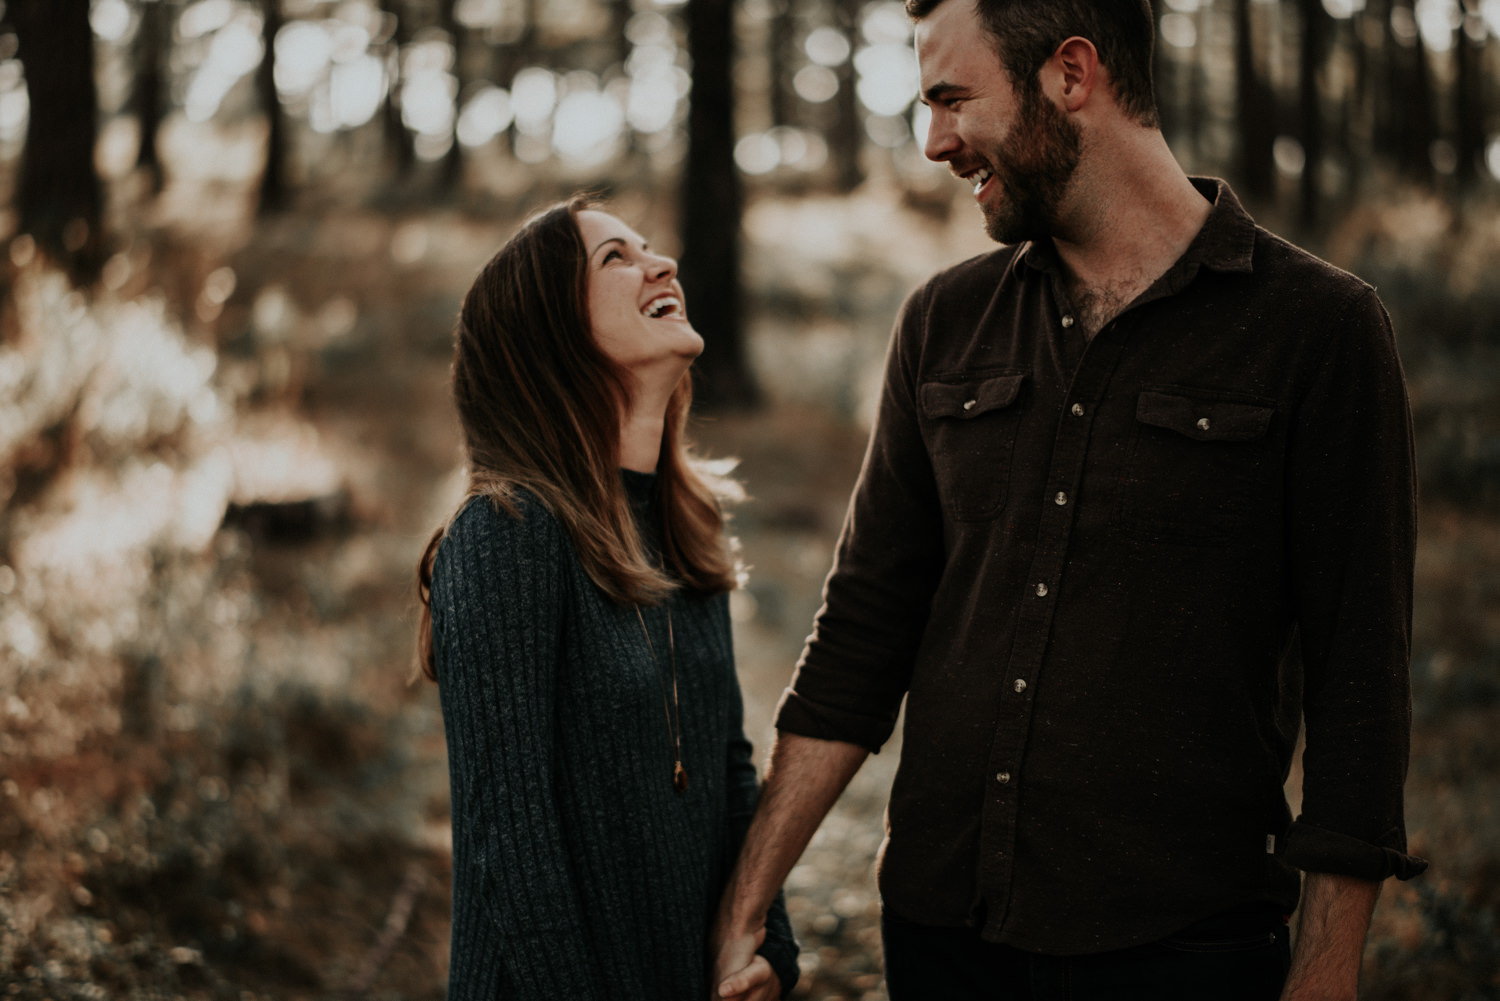 Couple Makes Each Other Laugh